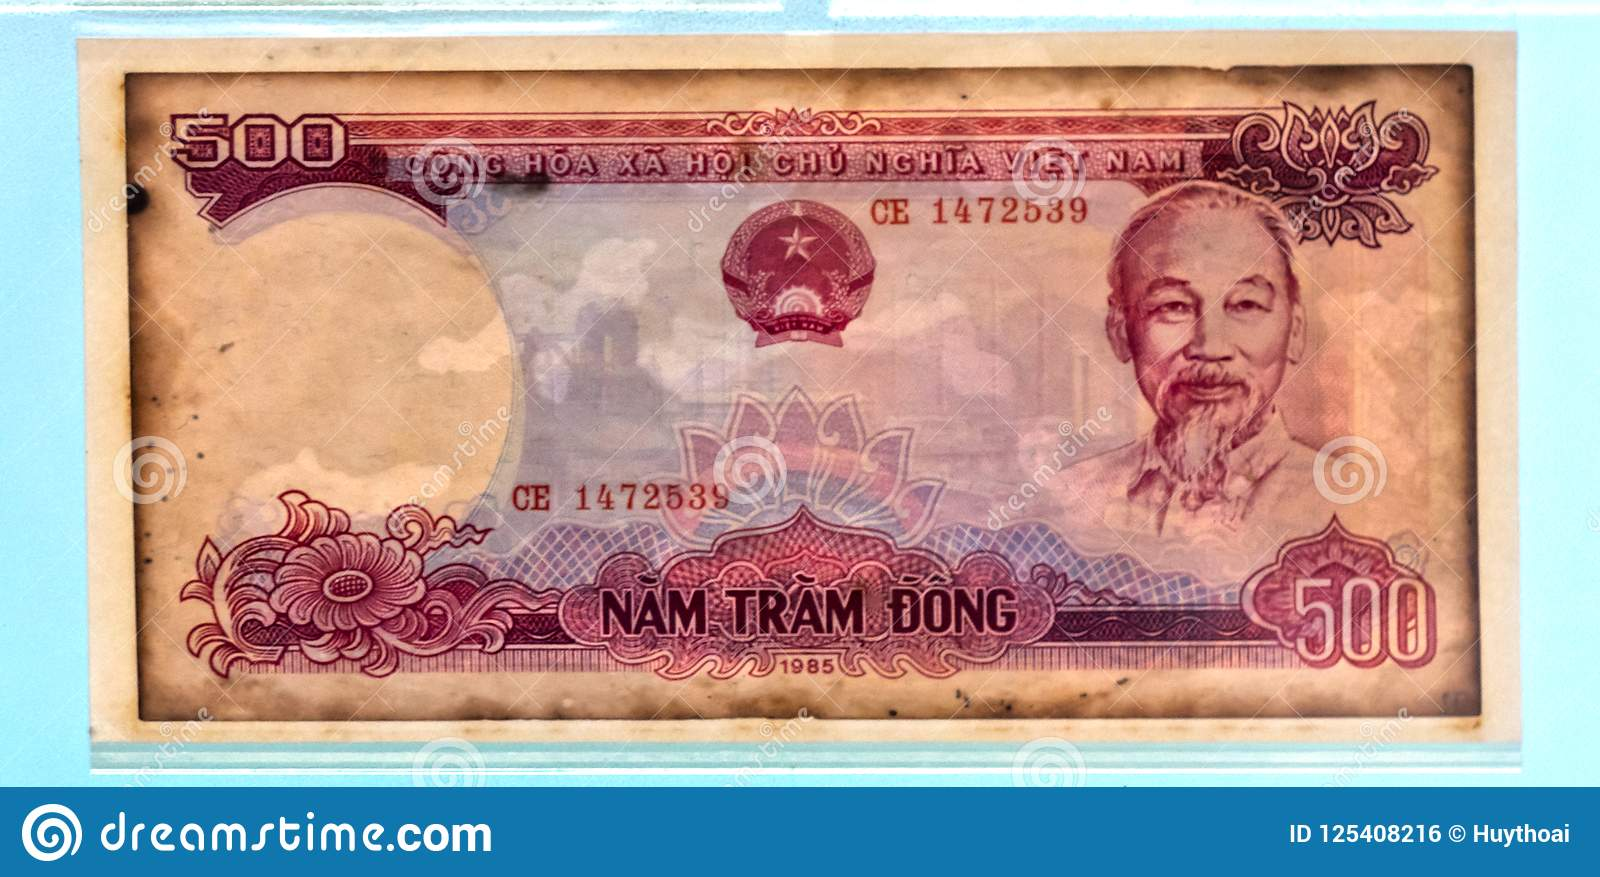 Vietnam currency banknotes editorial photo  Image of badge